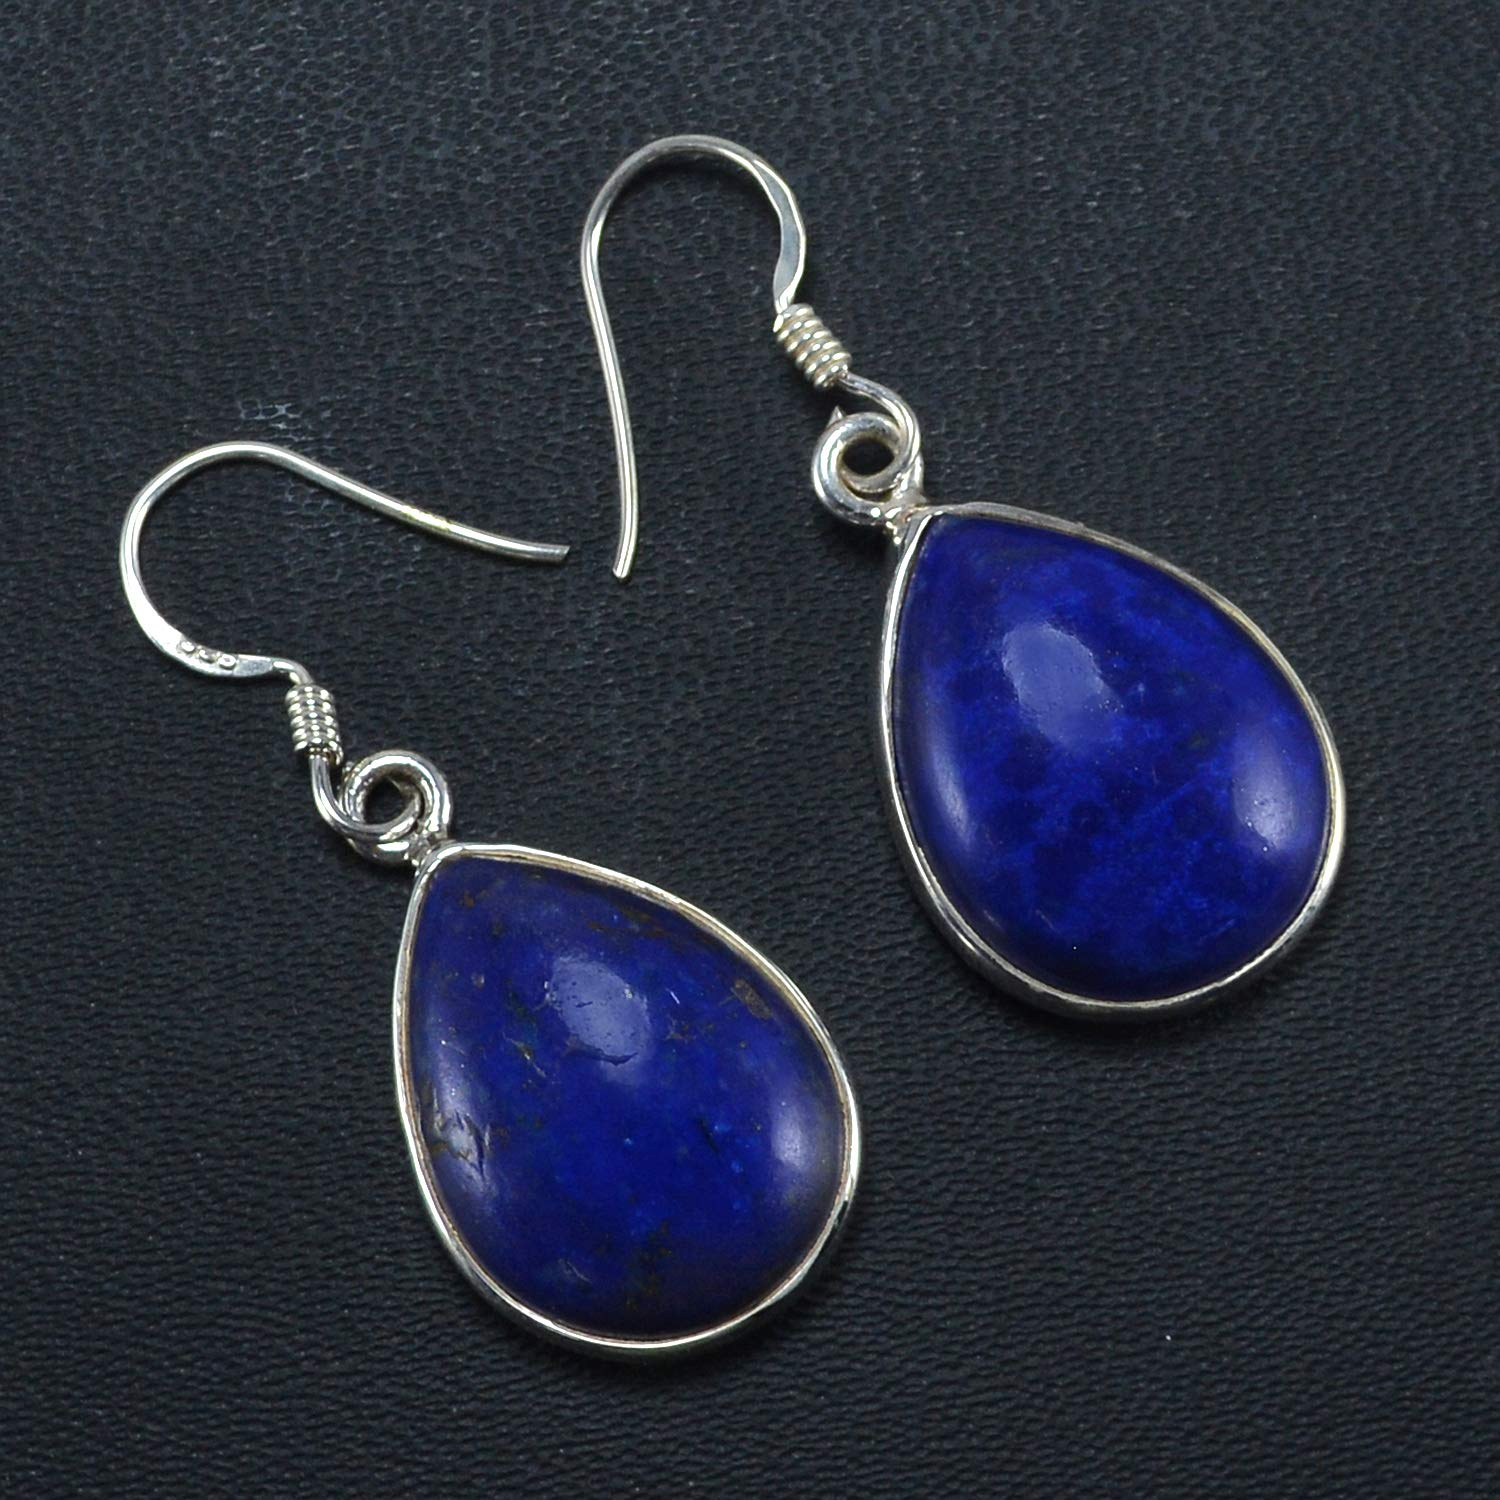 Saamarth Impex Lapis Lazuli 925 Sterling Silver Dangle Earring PG-155714